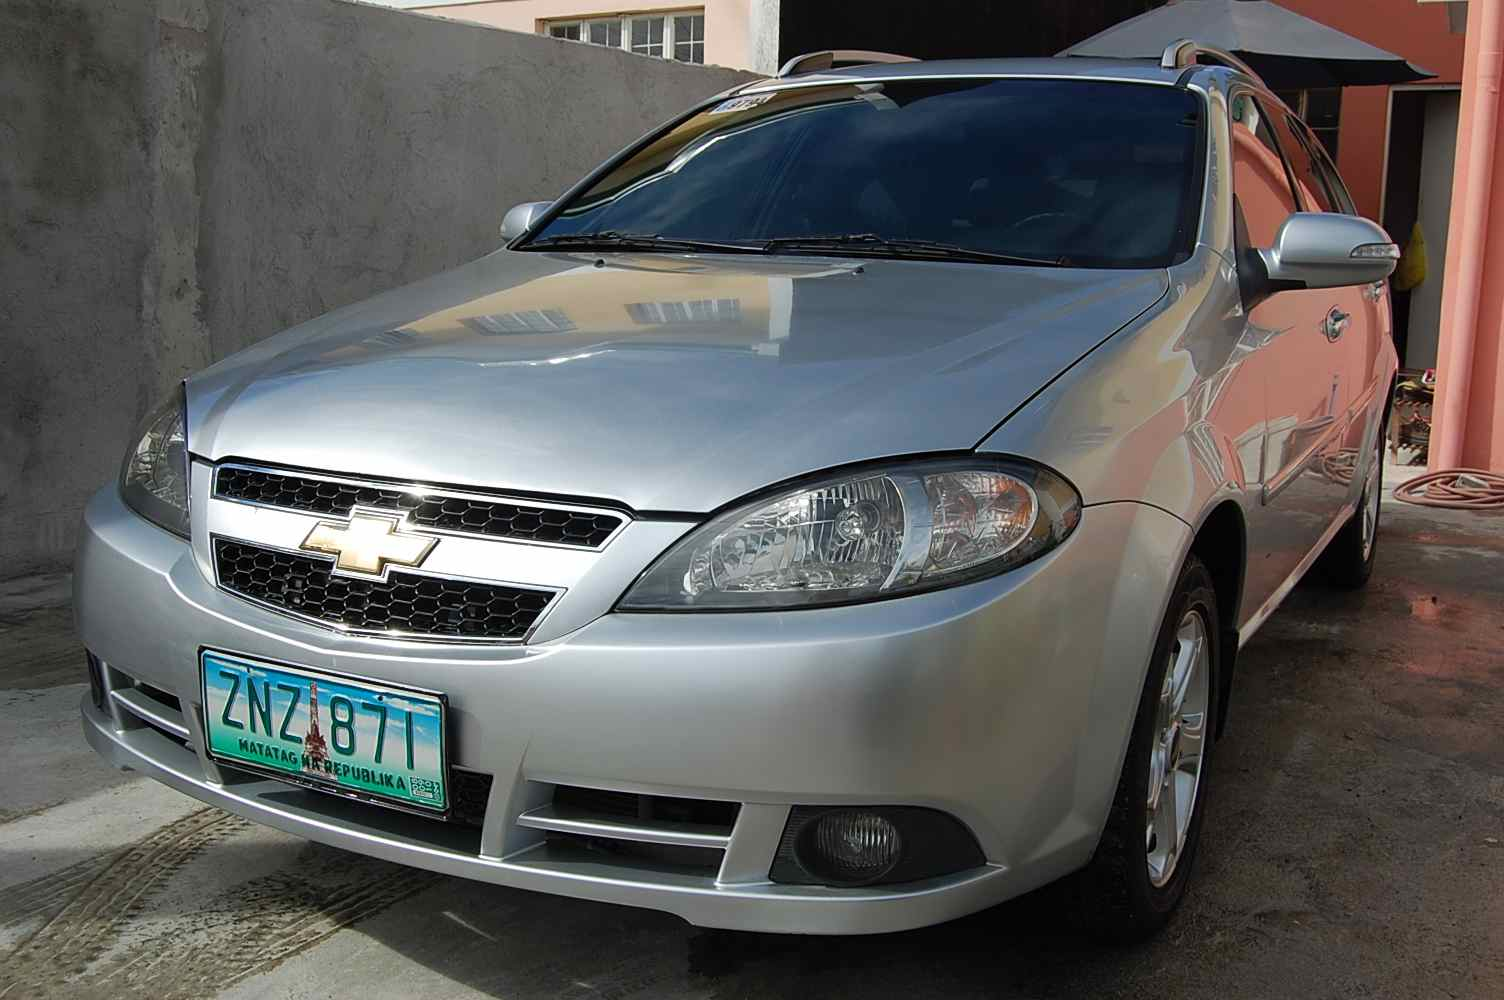 FOR SALE: CHEVROLET OPTRA WAGON 1.6LS AUTOMATIC 398K ONLY